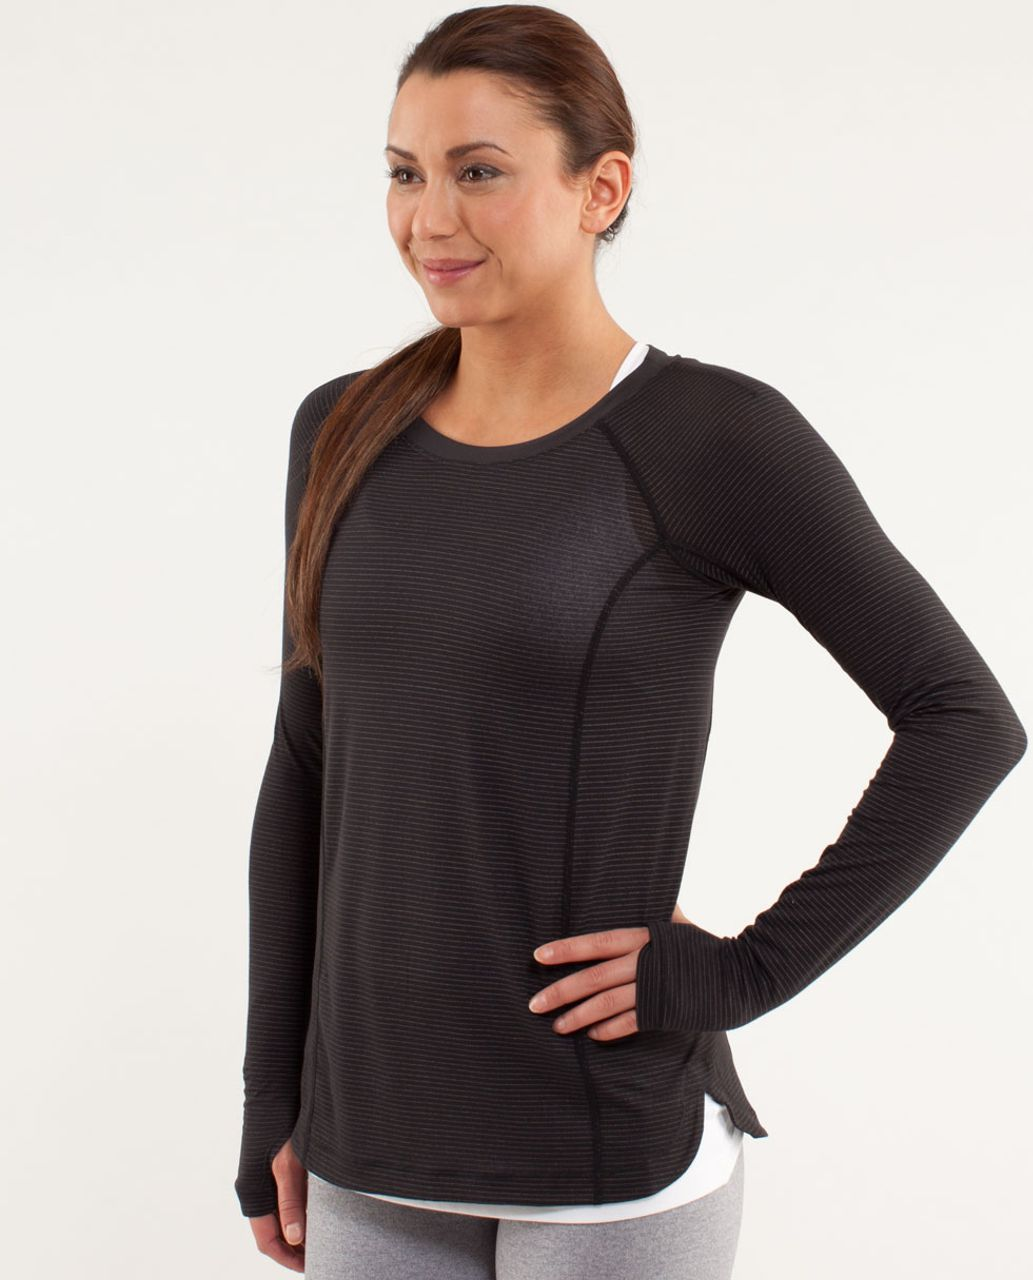 Lululemon Run:  Turn It Up Long Sleeve - Black